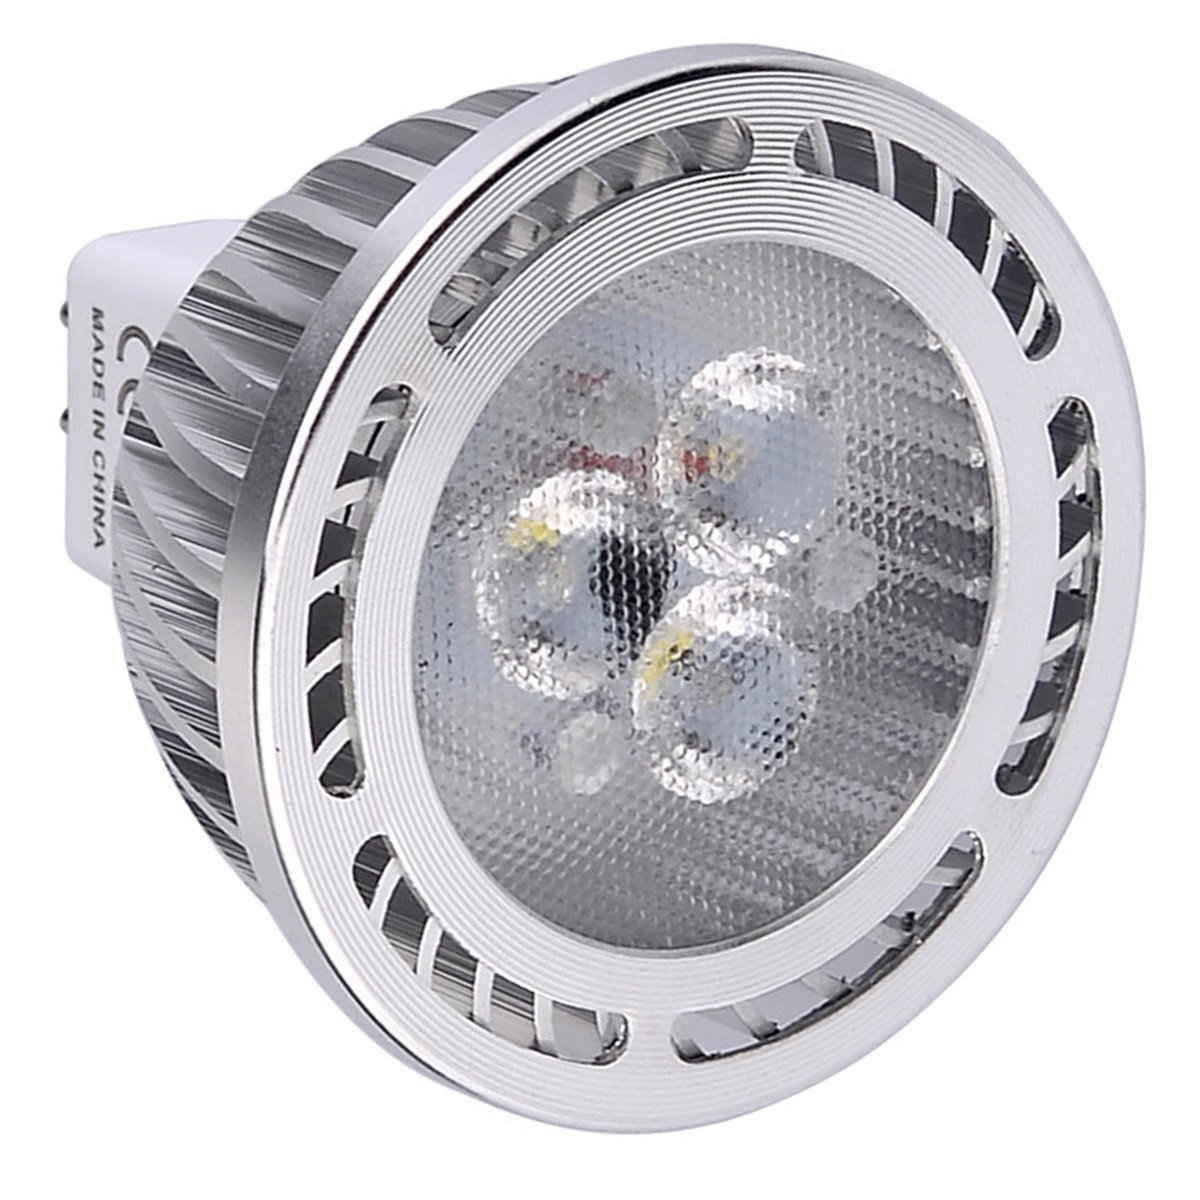 BMY Home Led bulbs,MR16 3W SMD 3030 200-300 LM Warm White/Cool White Frosted LED Spotlight AC/DC 12V (1Pcs) Lights Bulbs (Size : Warm White)